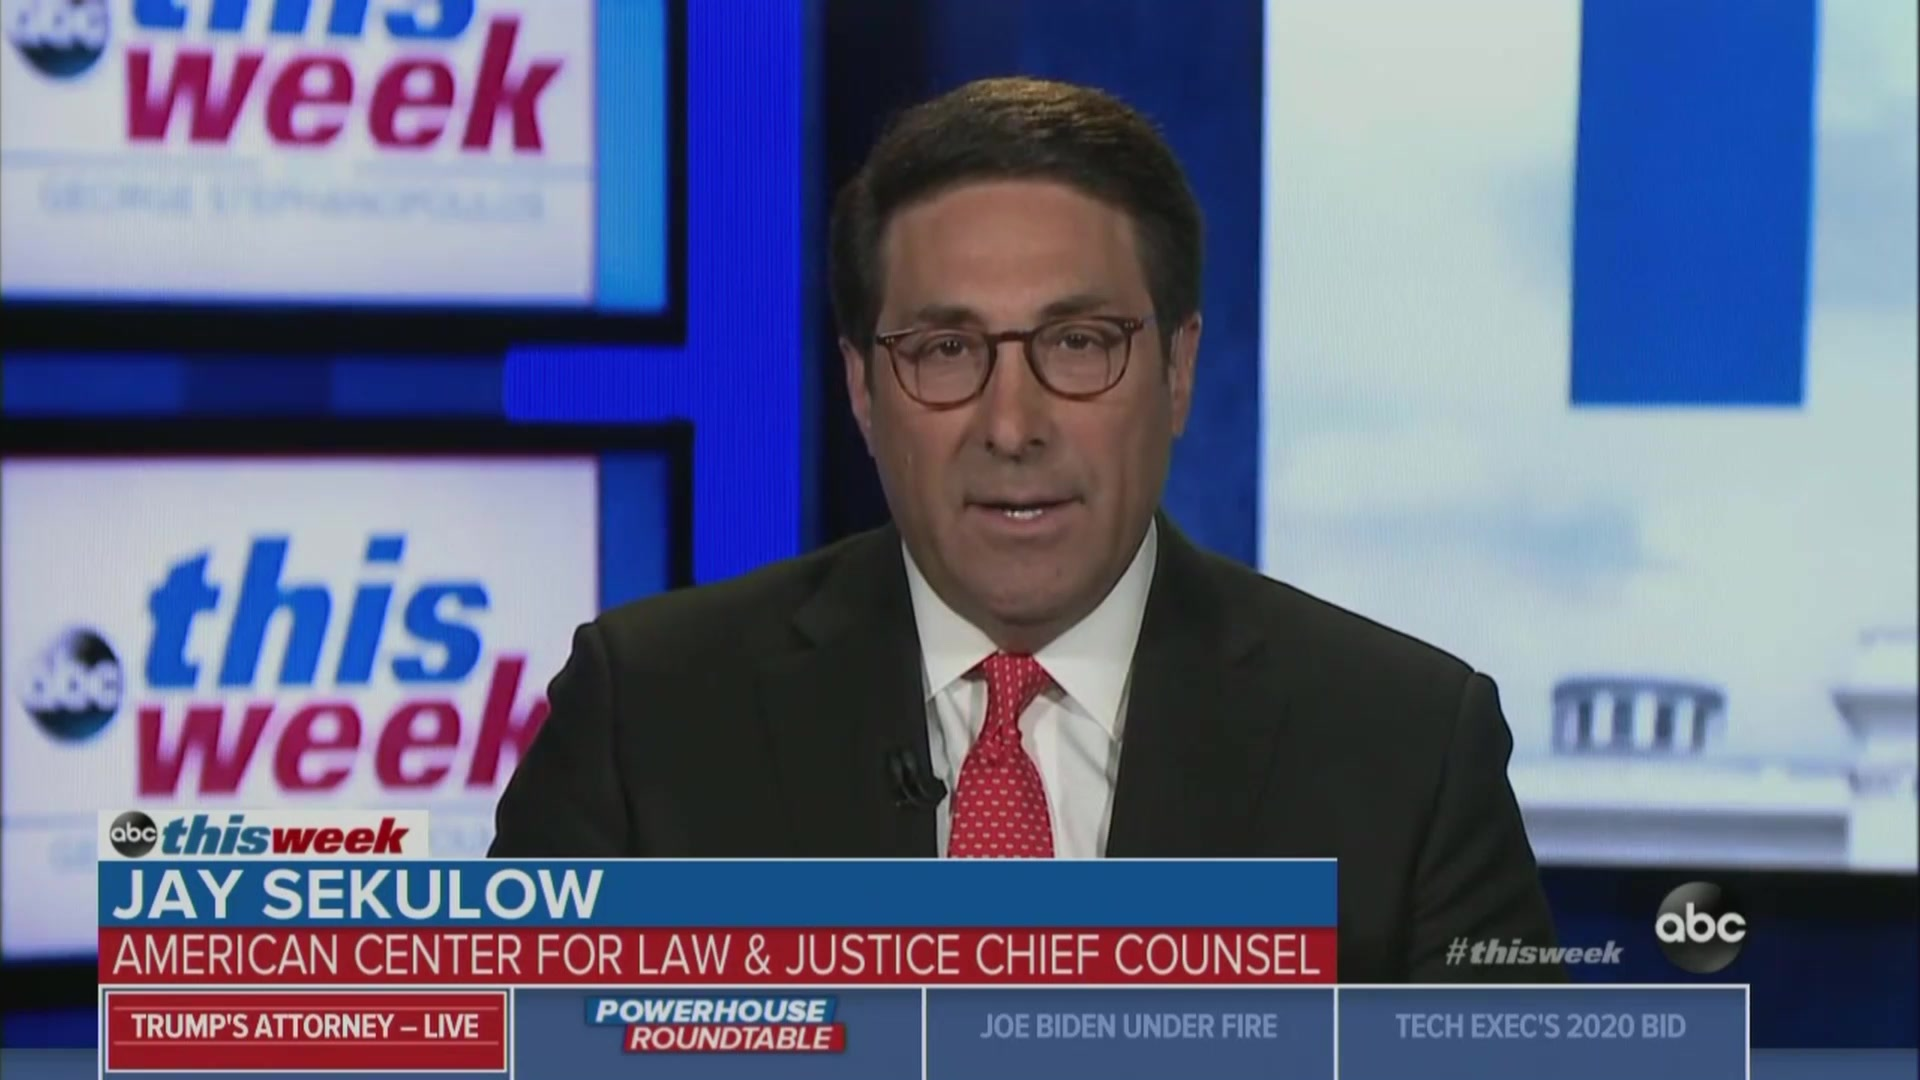 Trump Attorney Jay Sekulow Suggests President's Tax Returns Show Criminal Activity